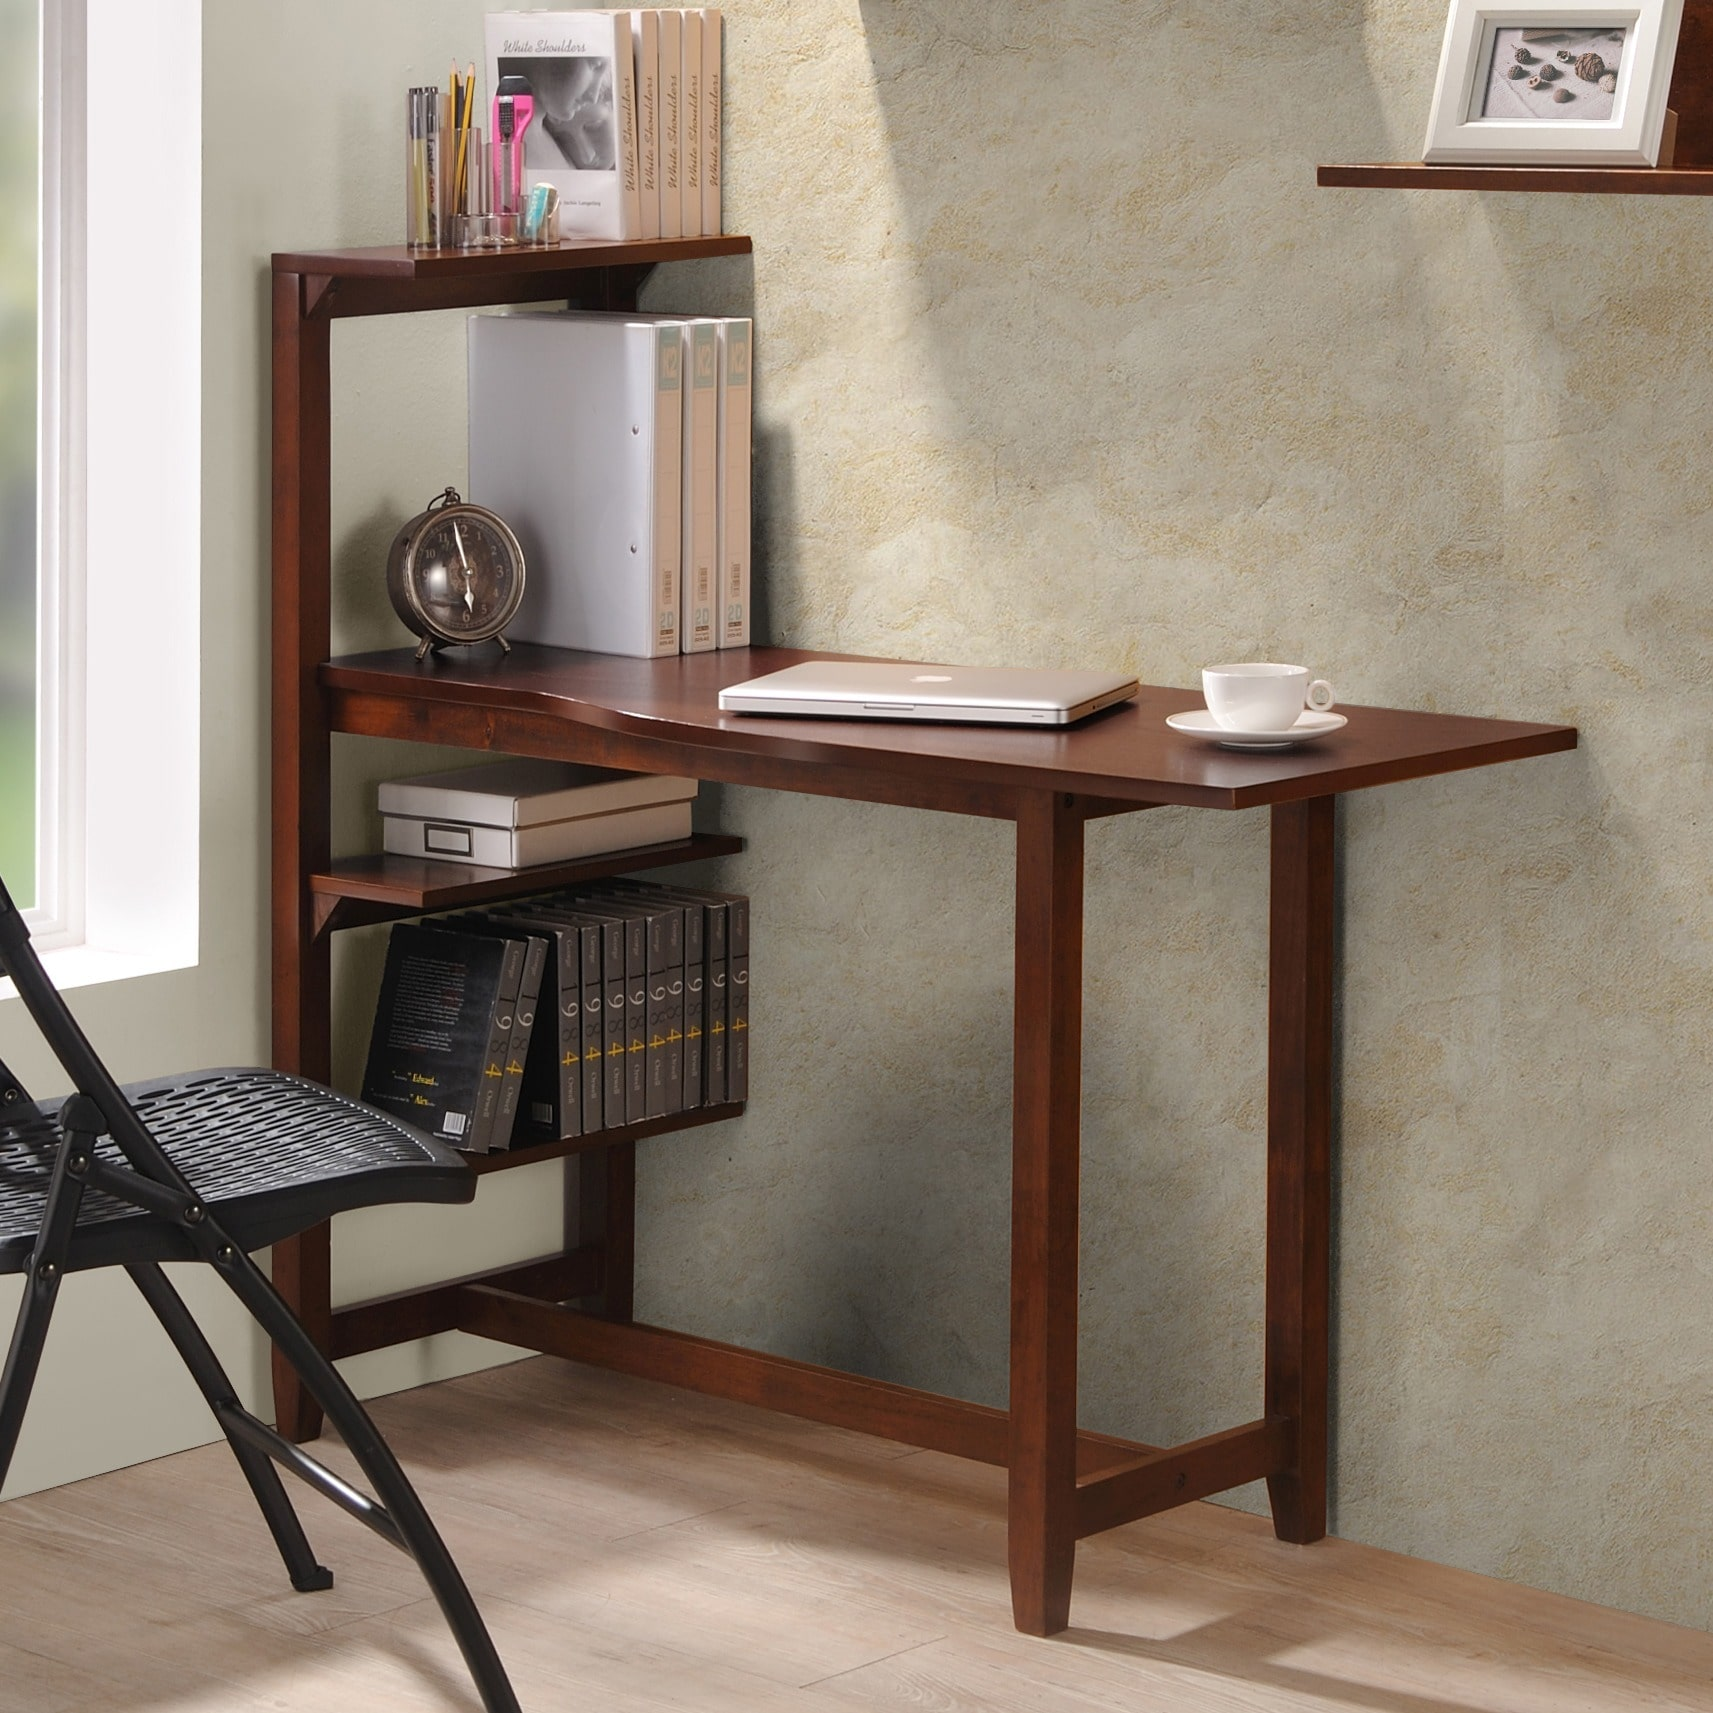 Home Office Hamburg International Caravan Hamburg Contemporary 4 Tier Shelving